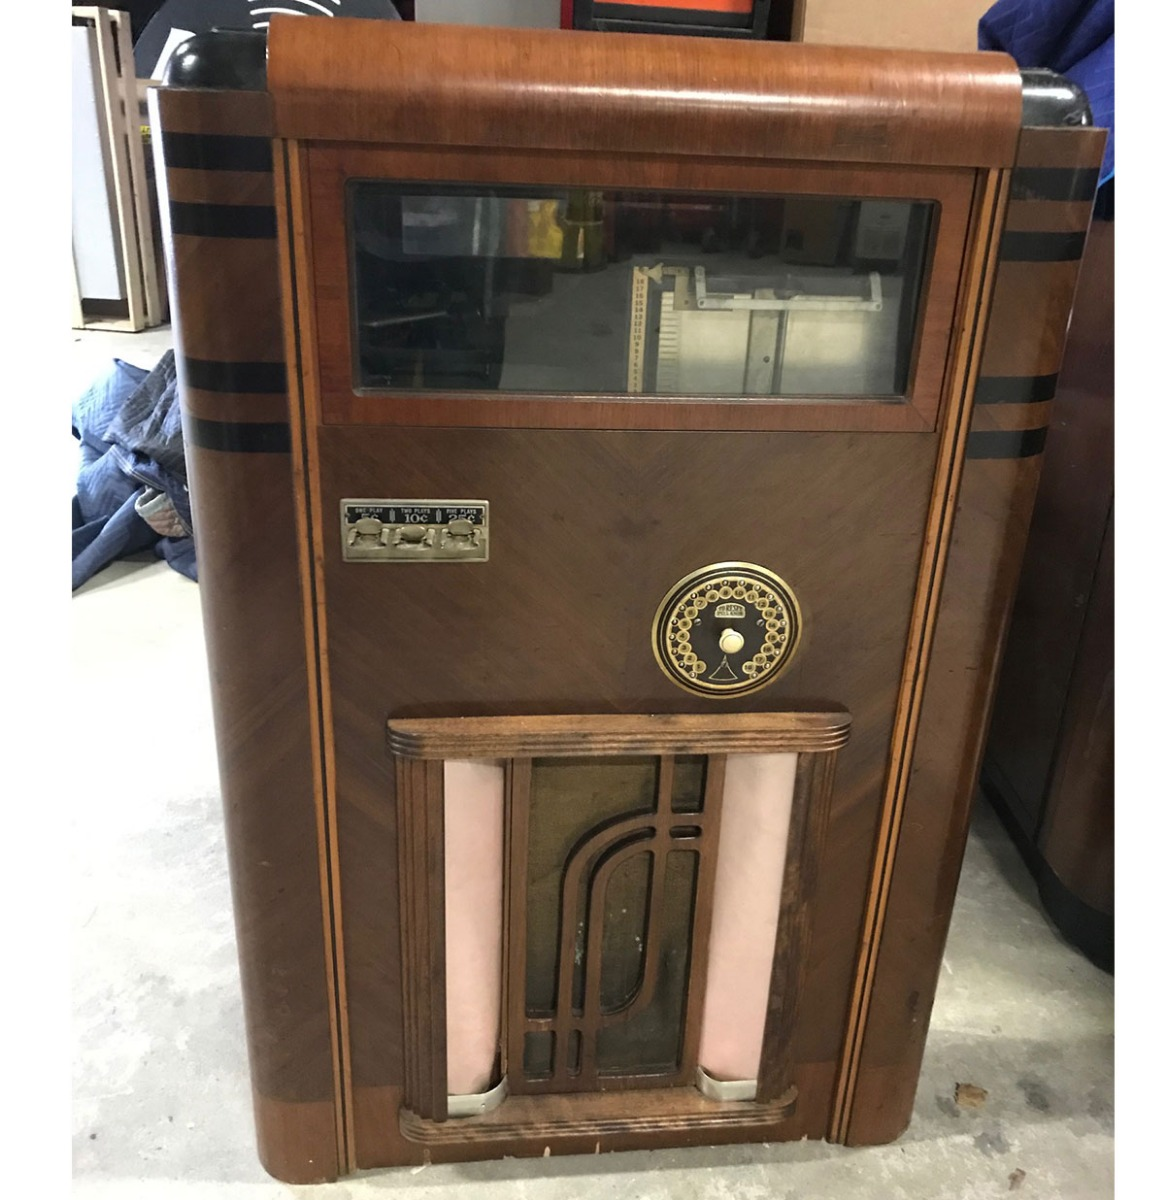 Gabel Charme Jukebox 1937 - Origineel